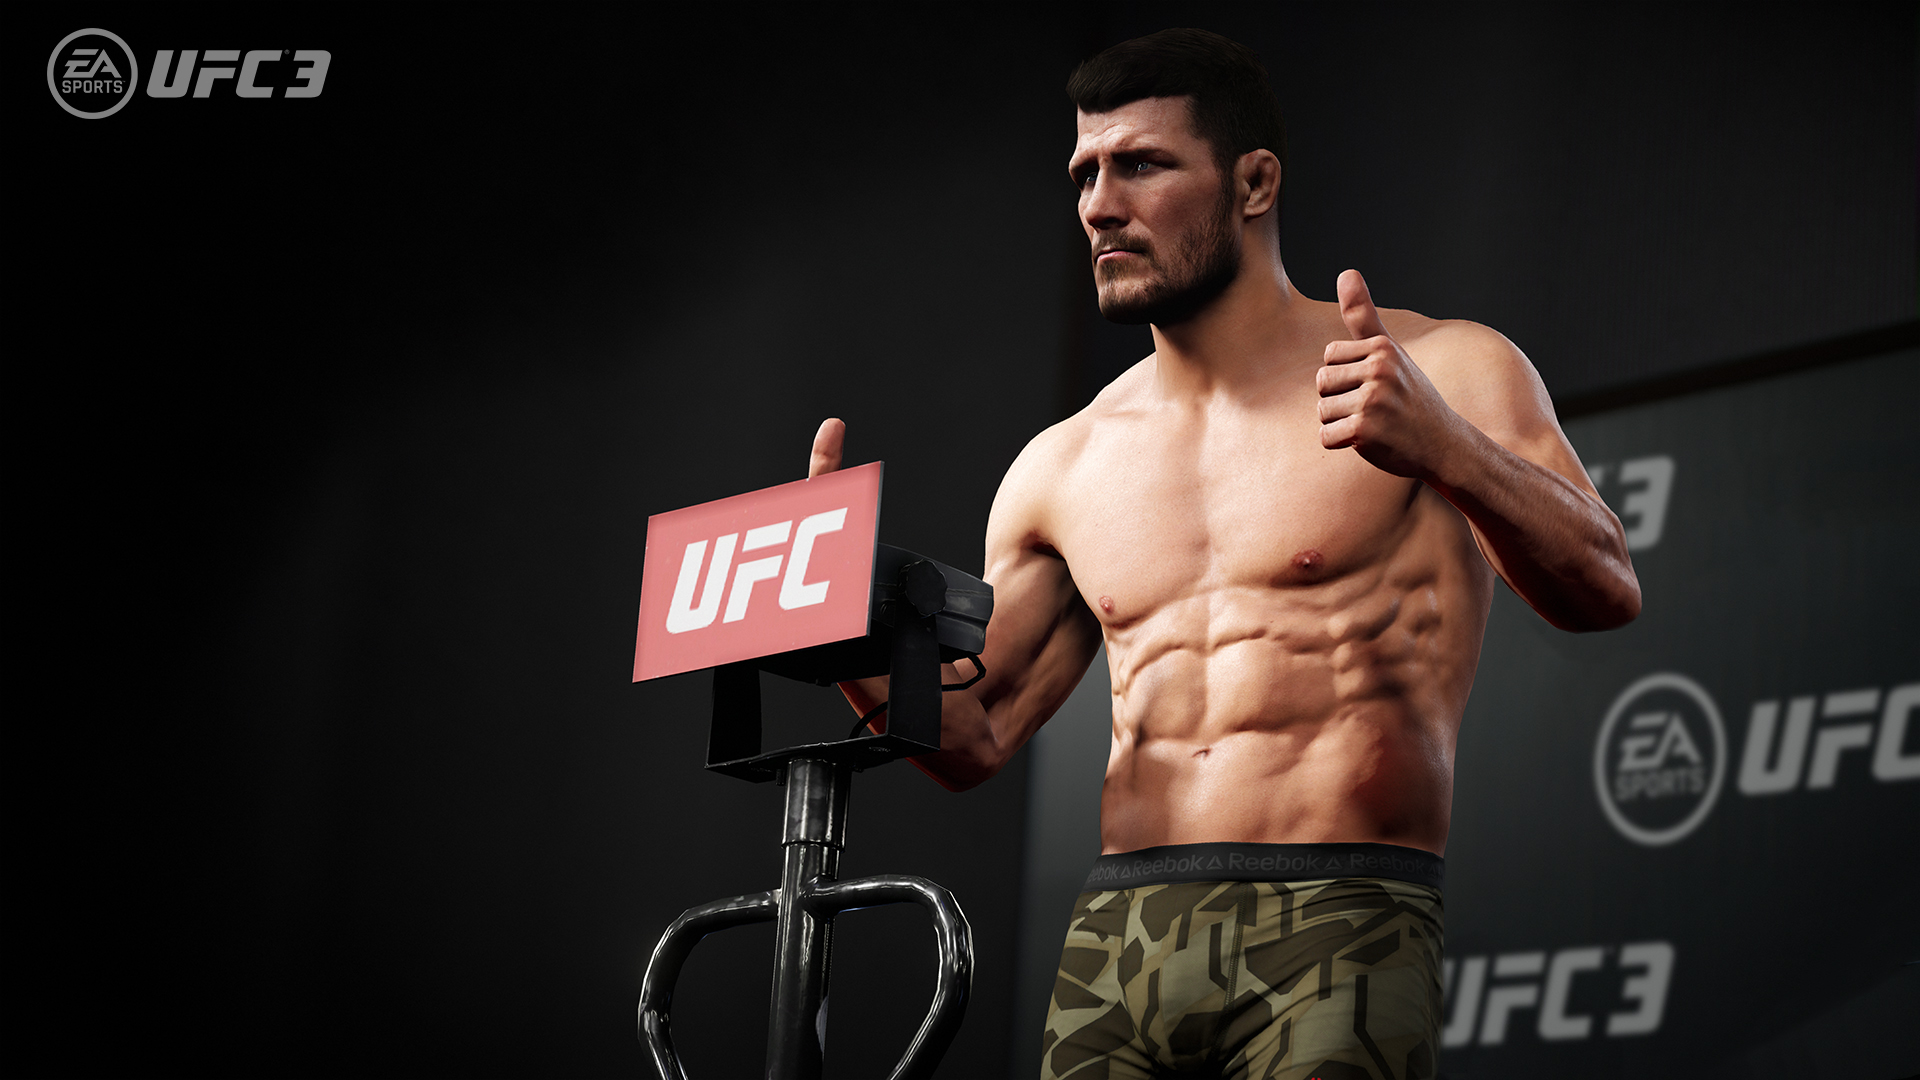 UFC 3's release date has been announced!